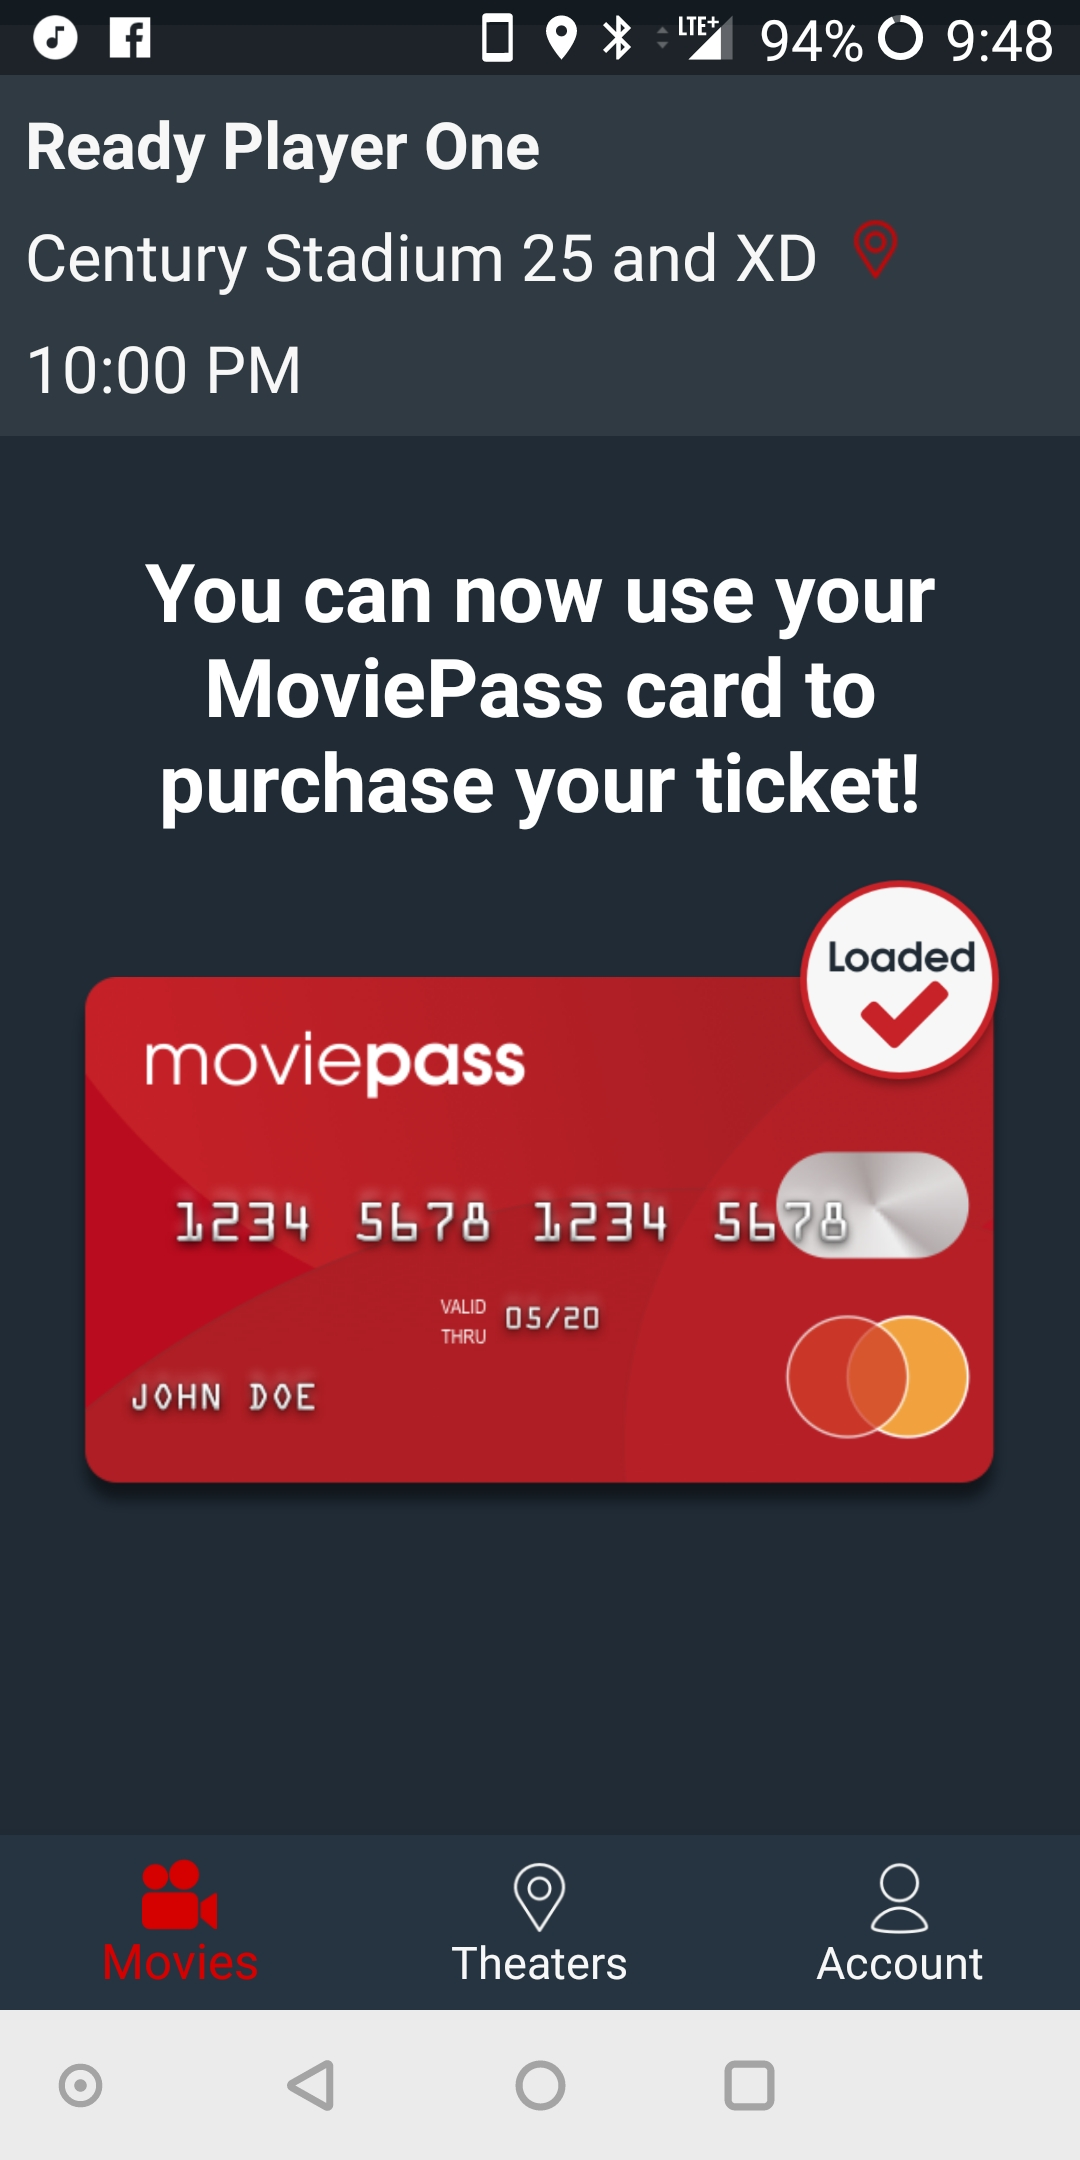 MoviePass card loaded | DaveTavres.com